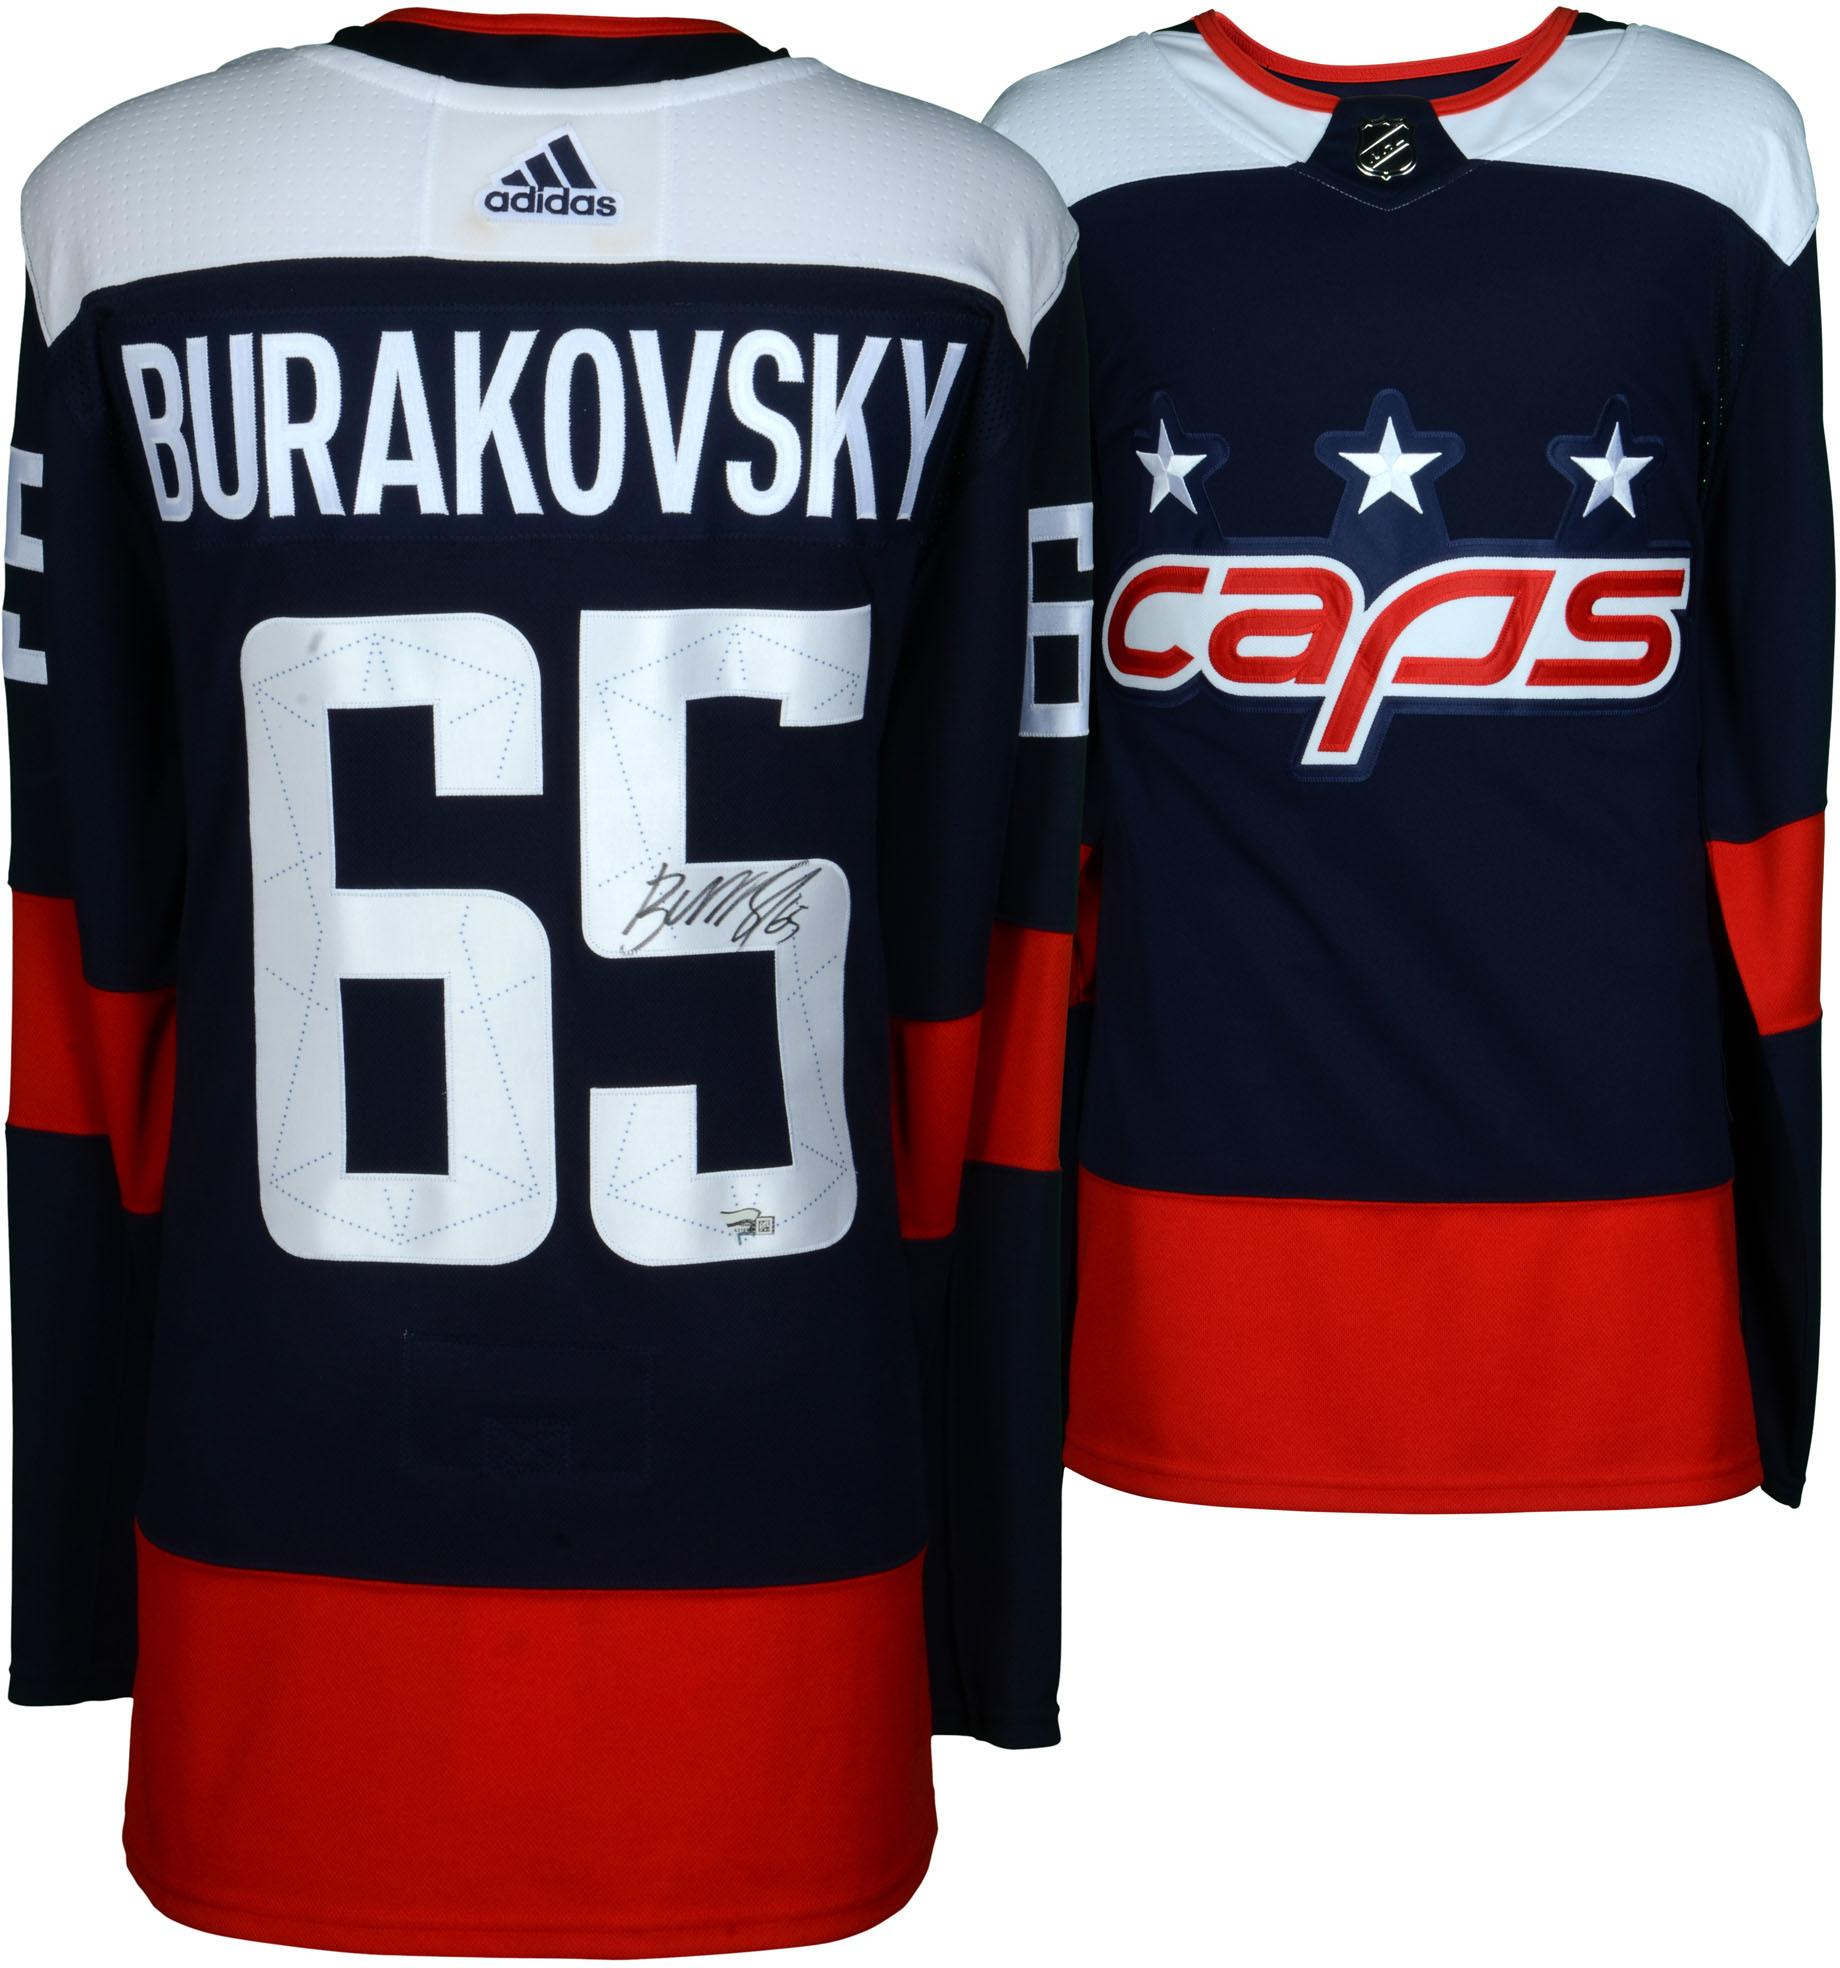 online store c7cc2 04866 Andre Burakovsky Washington Capitals Autographed 2018 Stadium Series Adidas  Authentic Jersey - Fanatics Authentic Certified